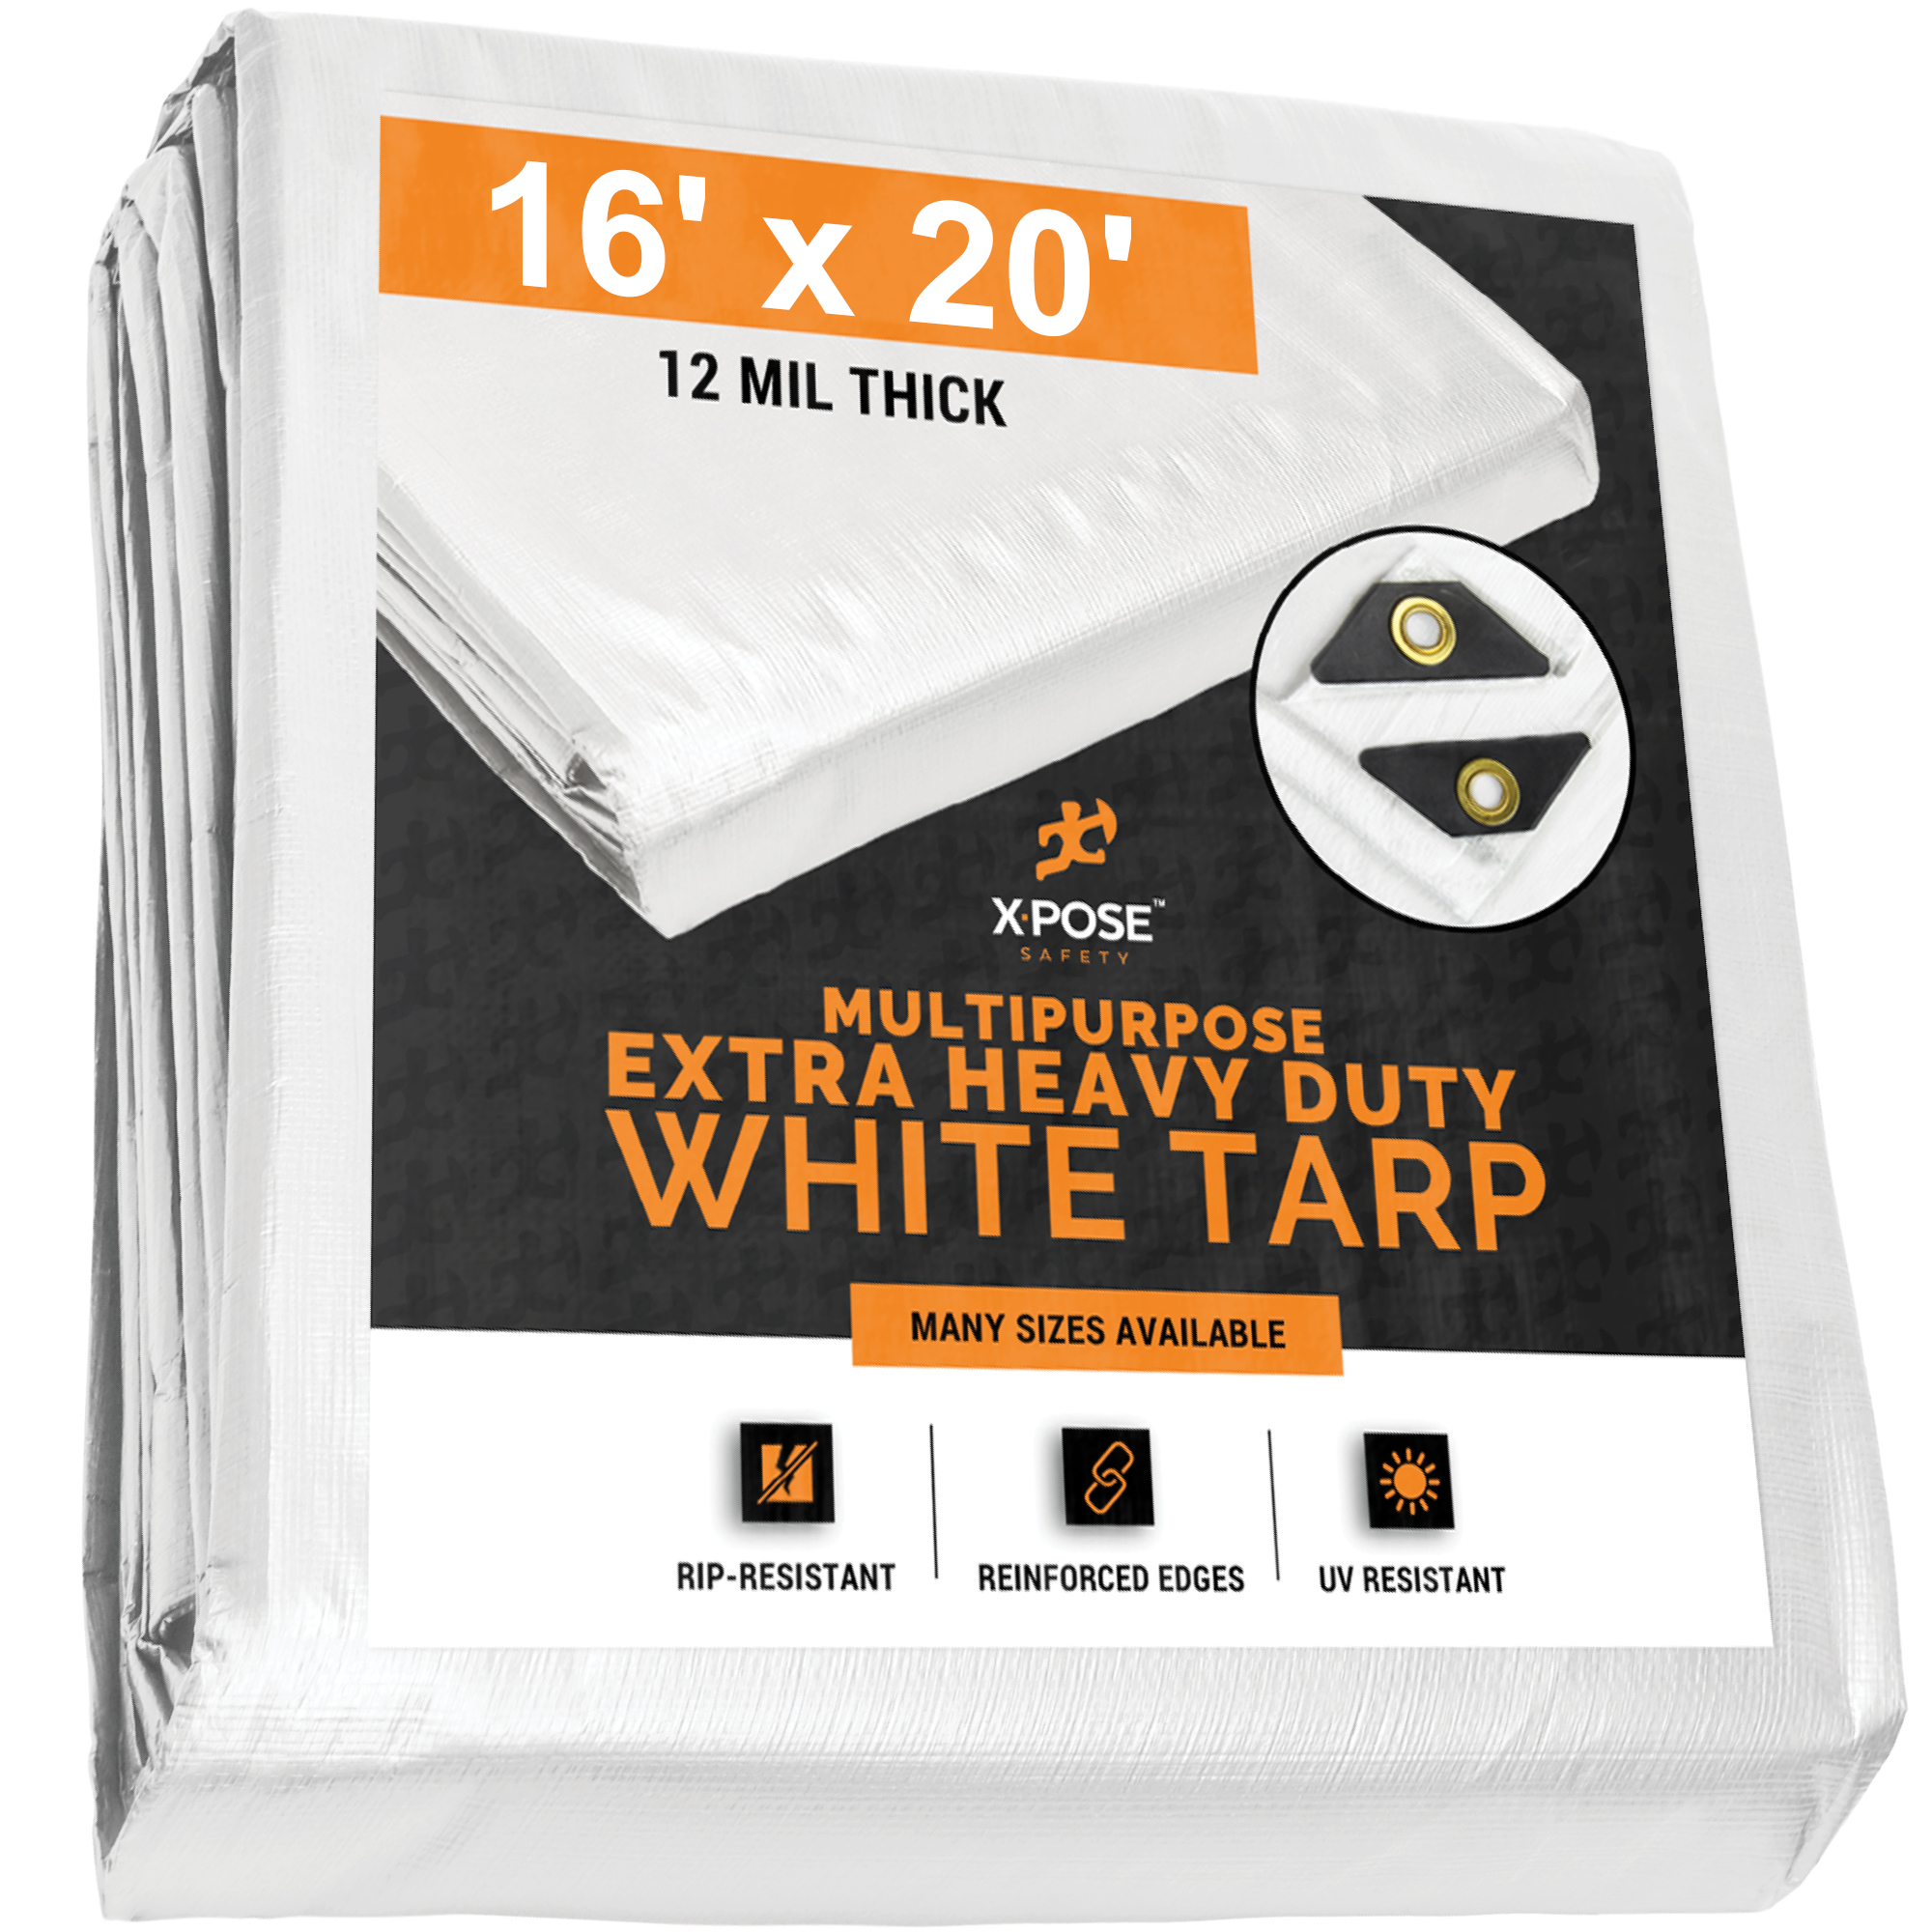 Heavy Duty White Poly Tarp 16' x 20' Multipurpose Protective Cover - Durable, Waterproof, Weather Proof, Rip and Tear Resistant - Extra Thick 12 Mil Polyethylene WHD-1620-X